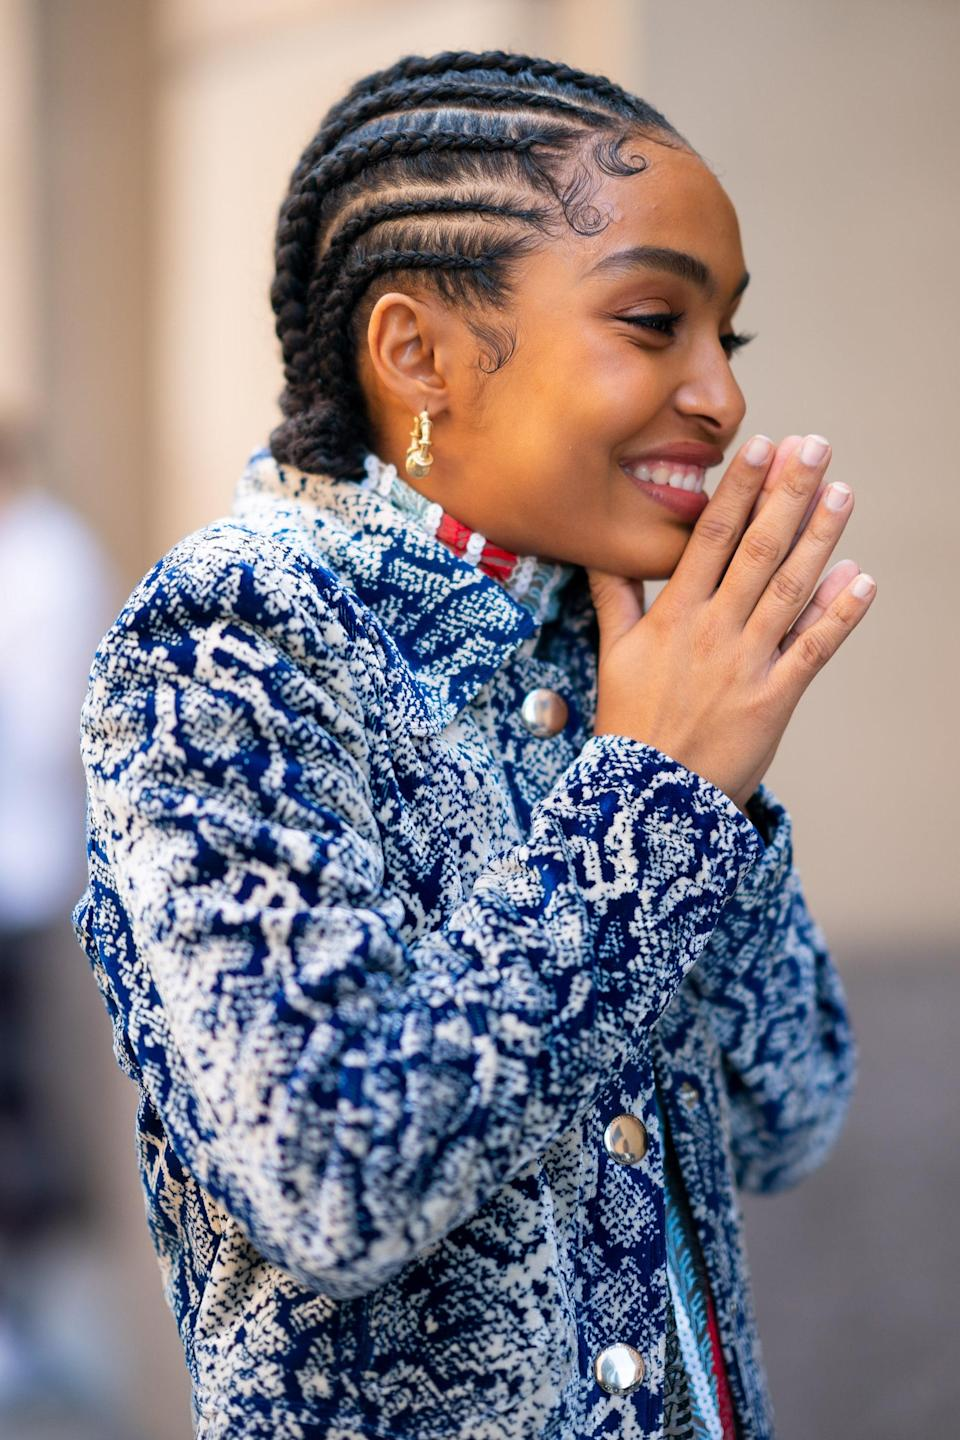 How much do we love this look on Yara Shahidi? Let us count the ways: Those sculpted baby hairs! The cute low bun! The focus on those <em>earrings!</em> Yeah, everything about this is perfection.